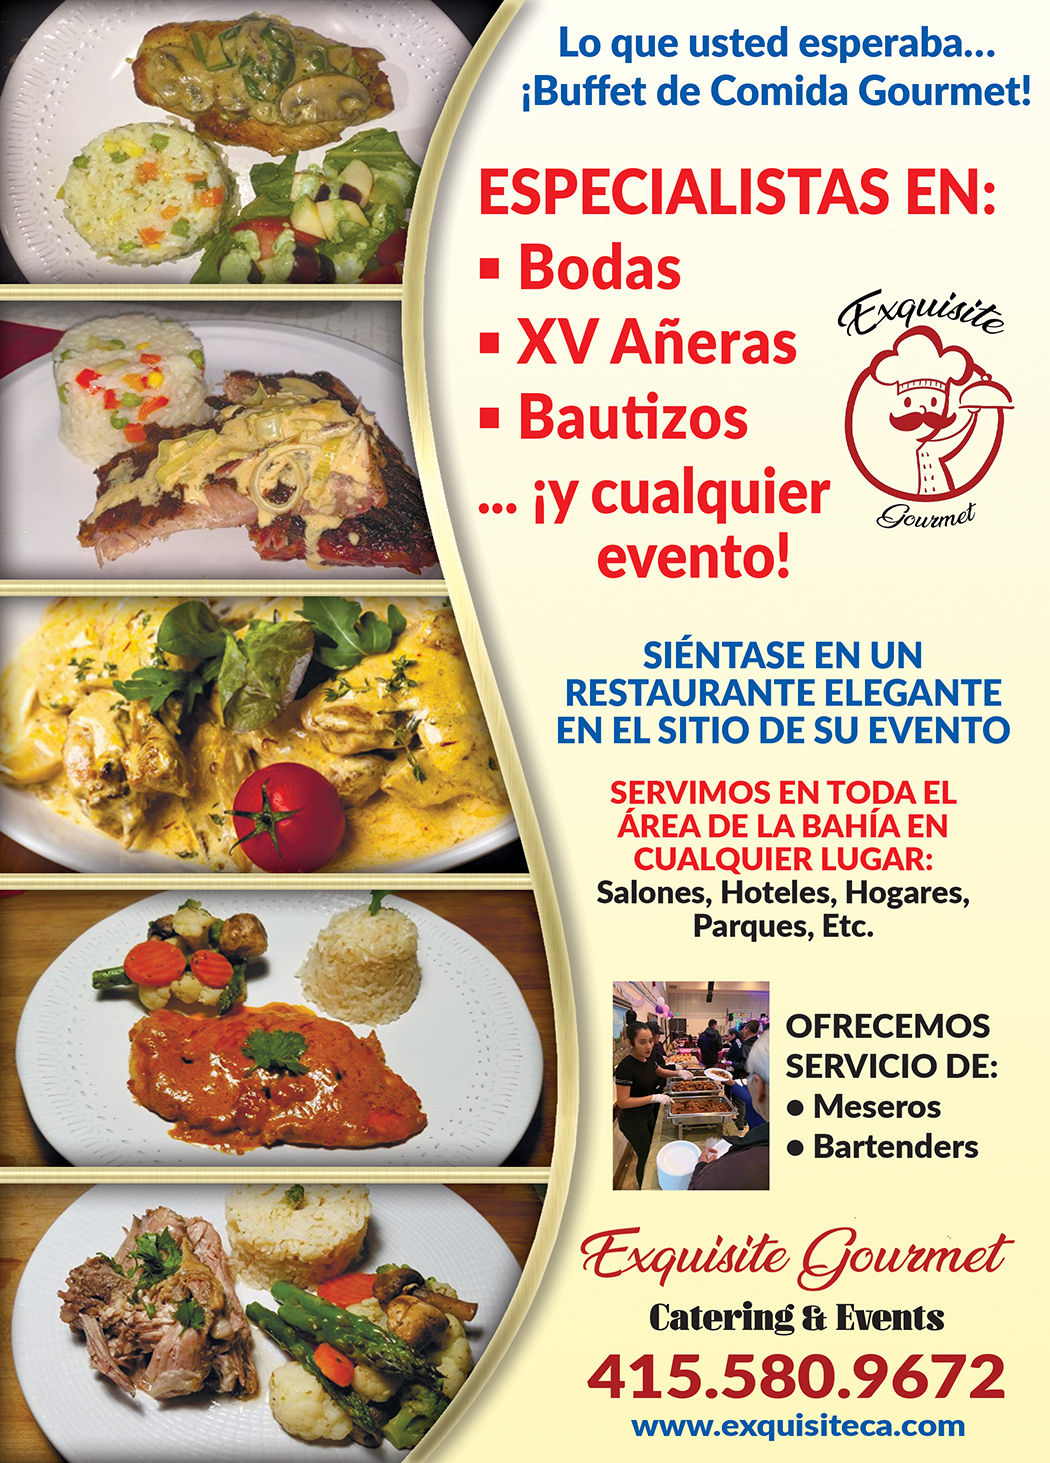 Exquisite Gourmet 1 pAG - ABRIL 2019.jpg